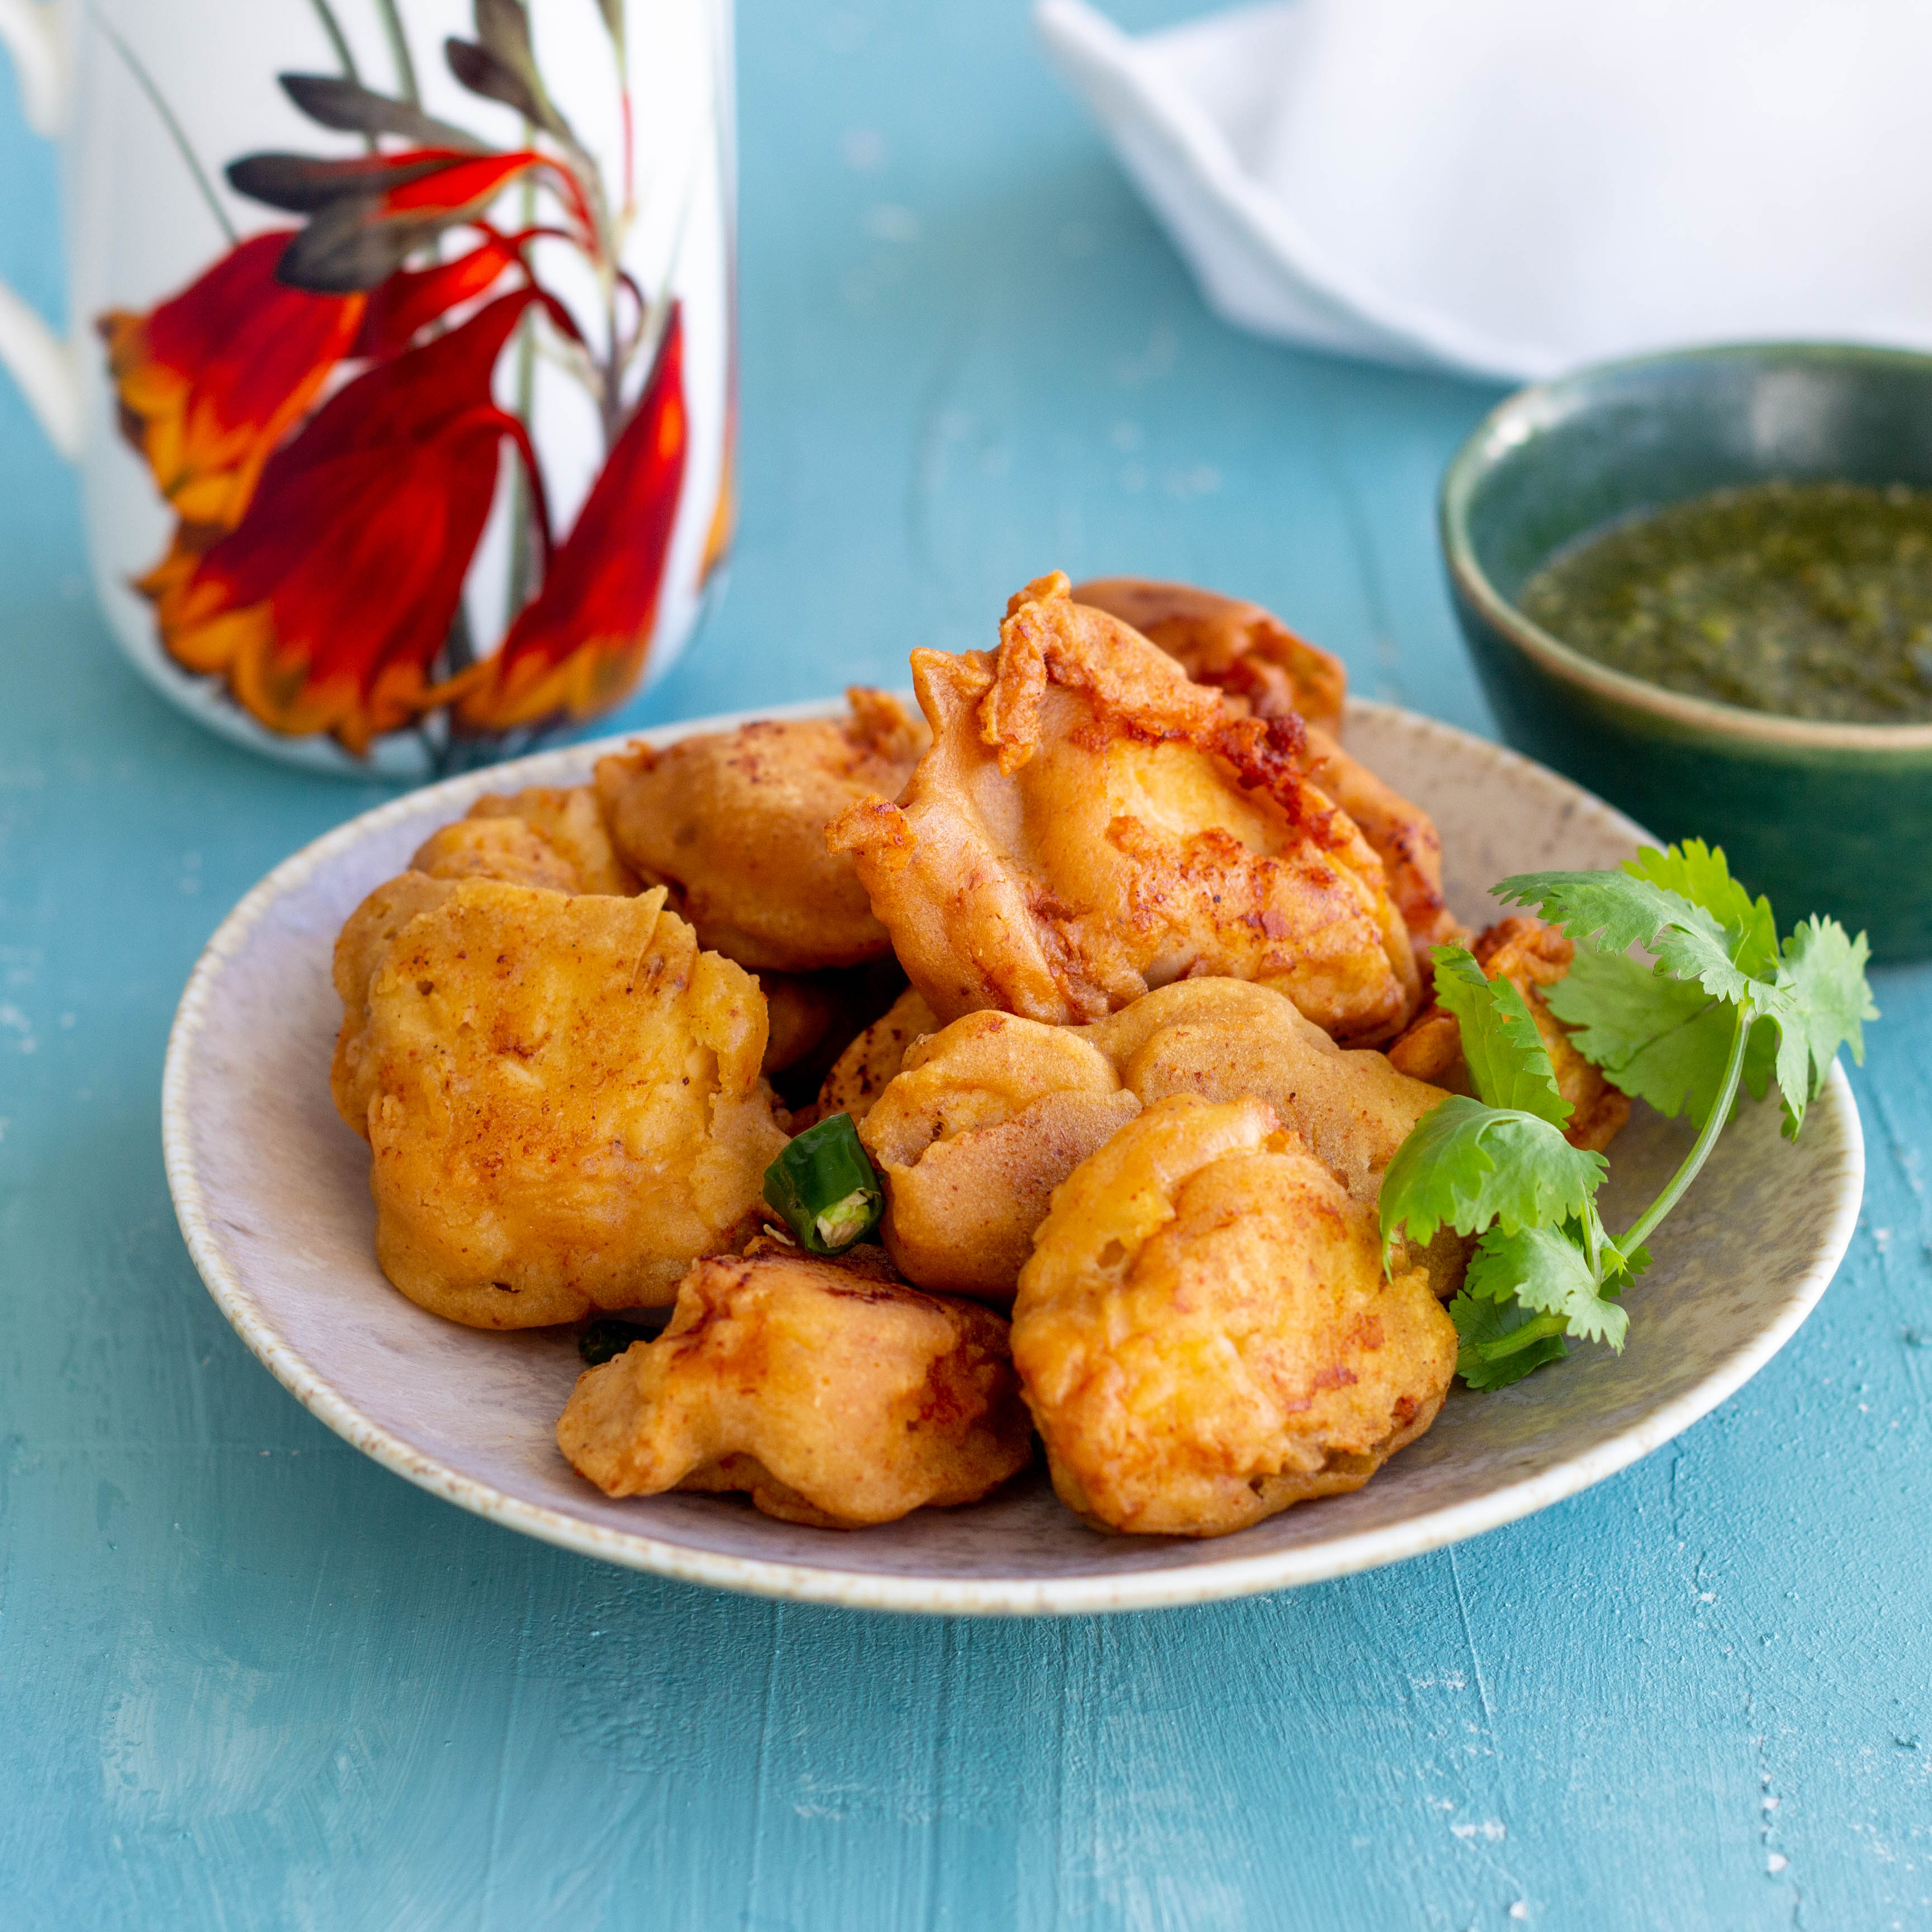 Chicken pakora are a super simple & delicious snack to make. Boneless chicken pieces are coated with a gram flour (besan) batter and fried till golden brown. Crispy & crunchy they will be a hit with adults and kids alike. Serve hot with green chutney or tomato ketchup with a cup of chai on the side.